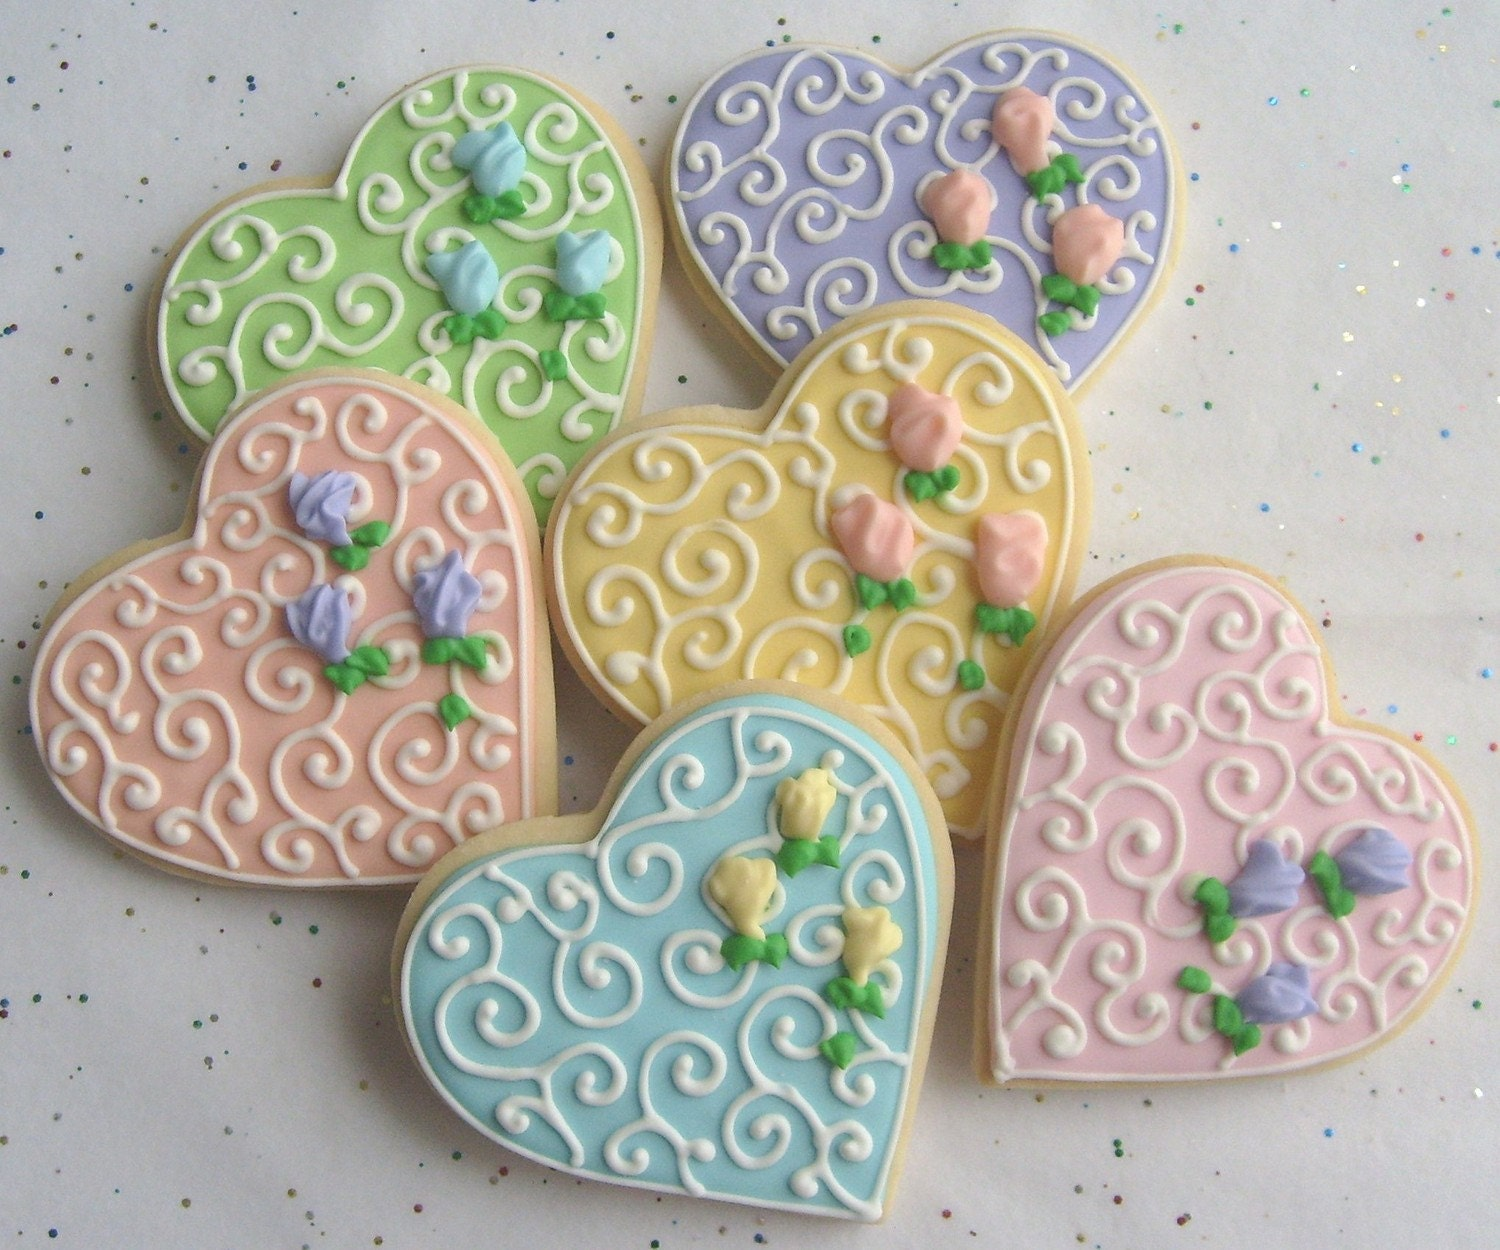 Romantic Heart Decorated Cookie Favors Wedding Heart. Bunk Beds For Small Rooms. Home Decor For Cheap. Rustic Chic Decor. Party Room Rentals. Bathroom Butterfly Decor. Laundry Room Sinks With Cabinet. Yellow Decorative Pillow. Western Decorations